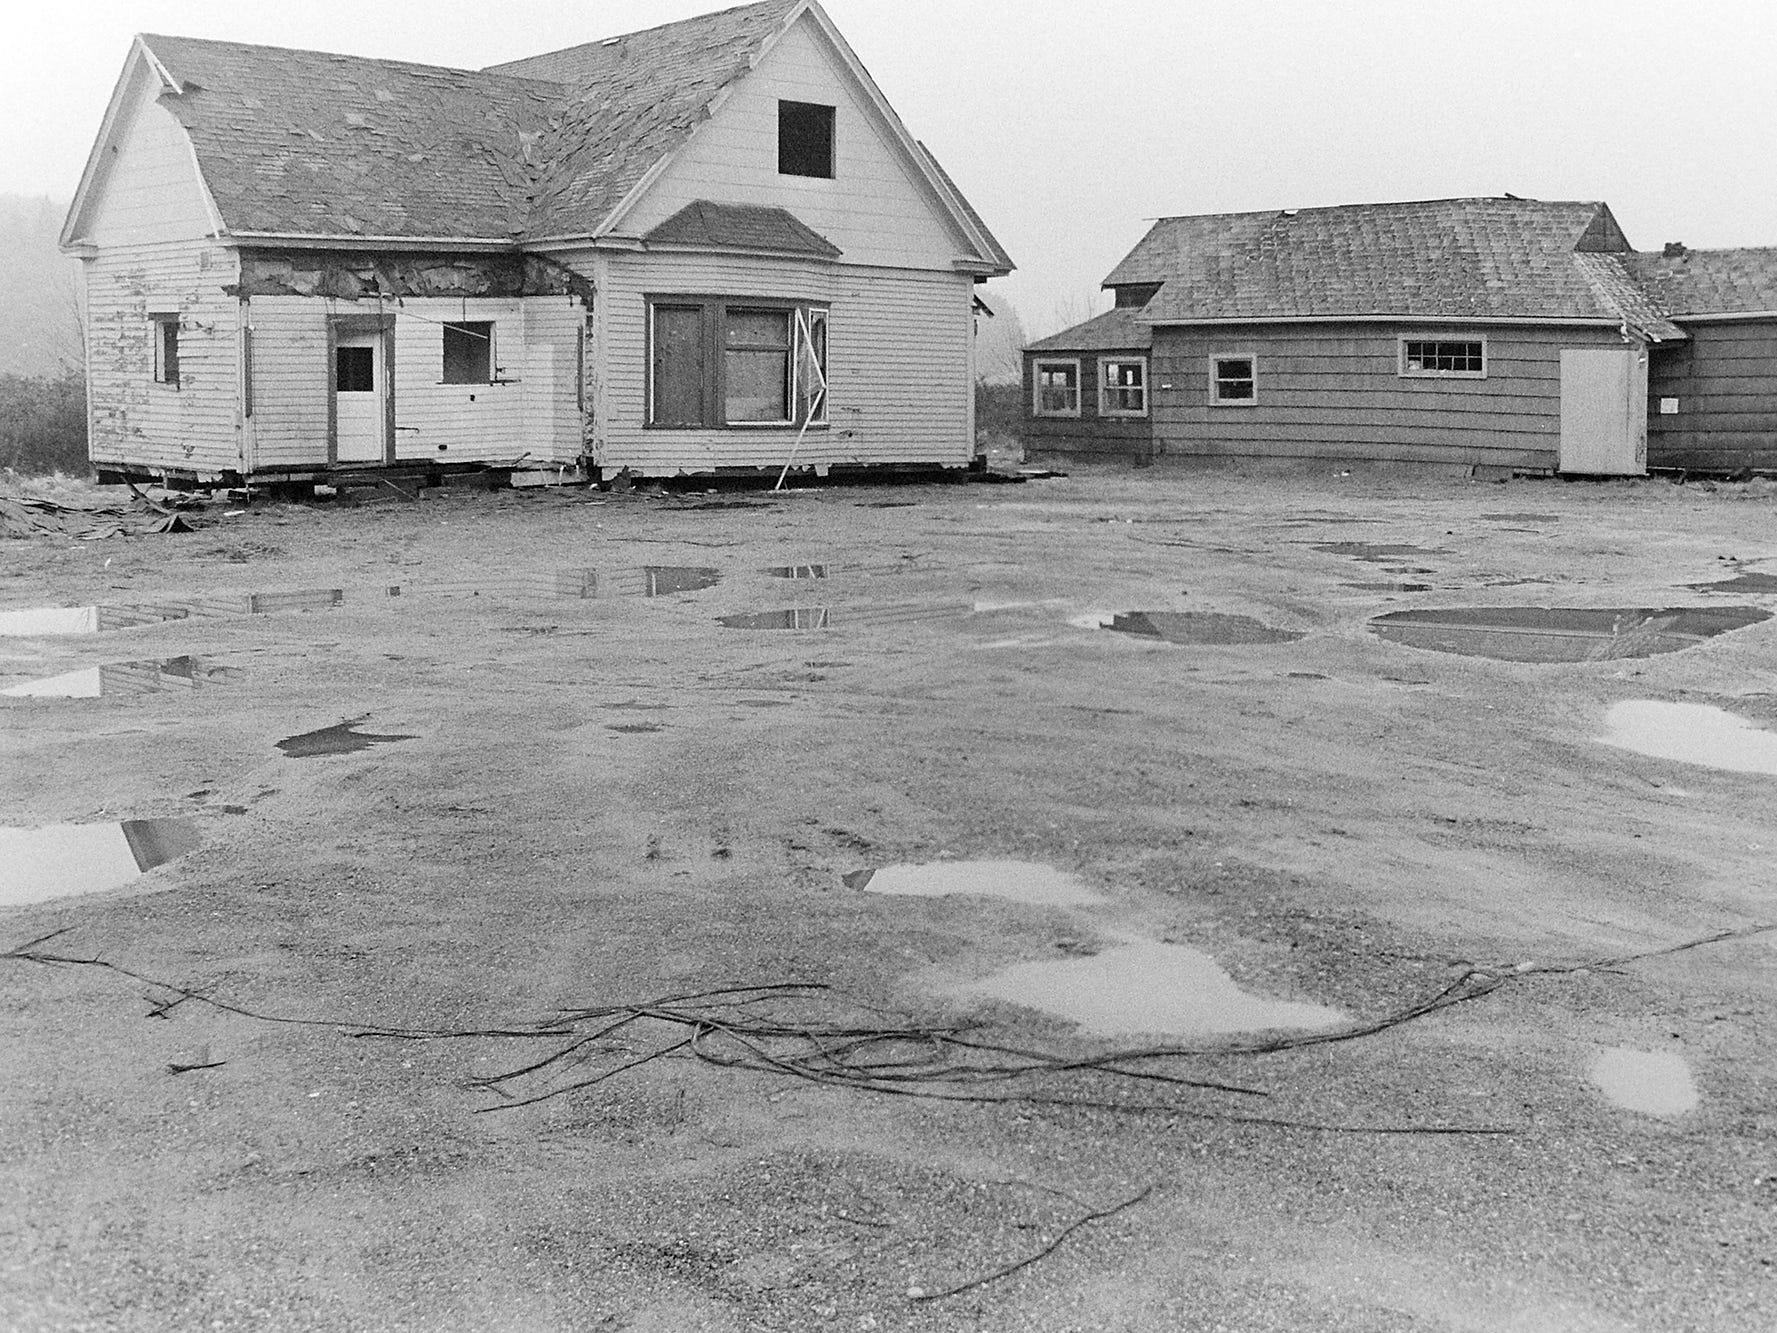 03/20/84